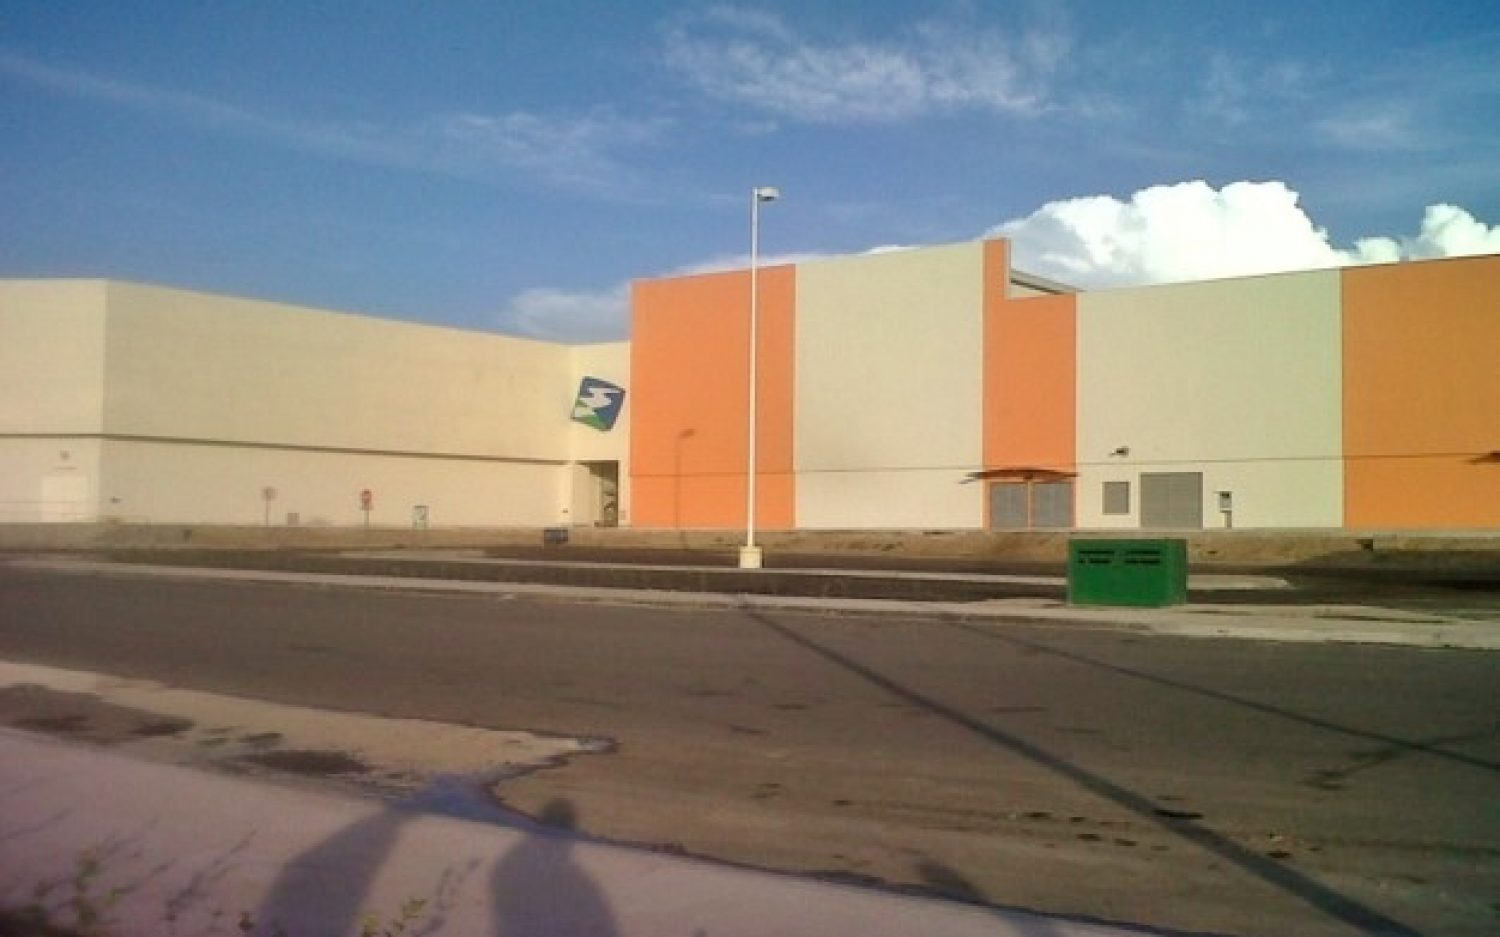 Co-Plaza Sendero Villahermosa (12)